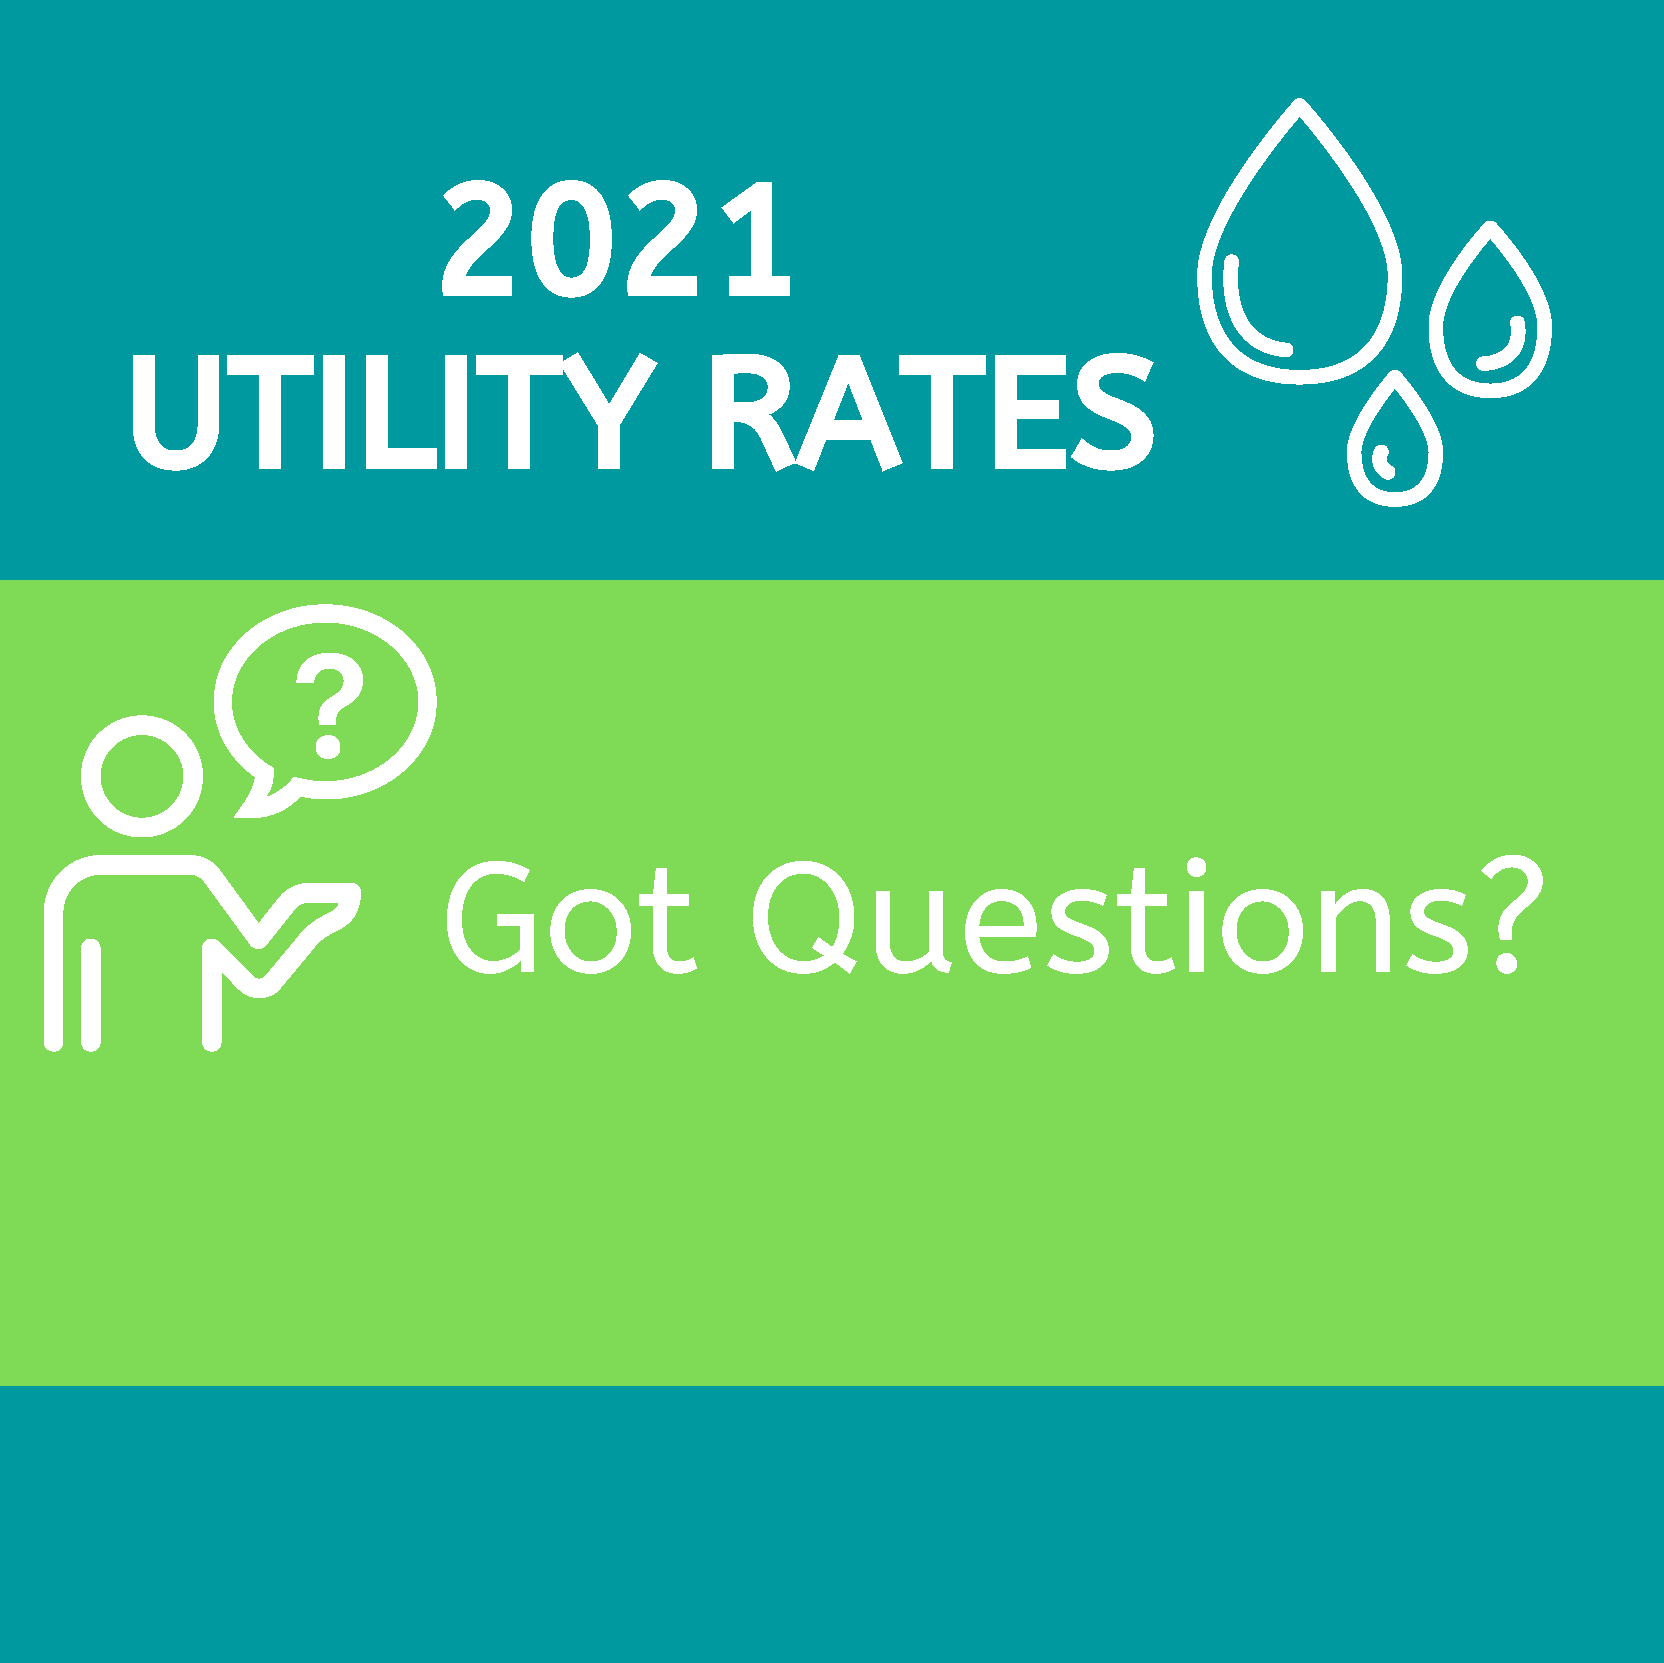 Utility Rates_Got Questions